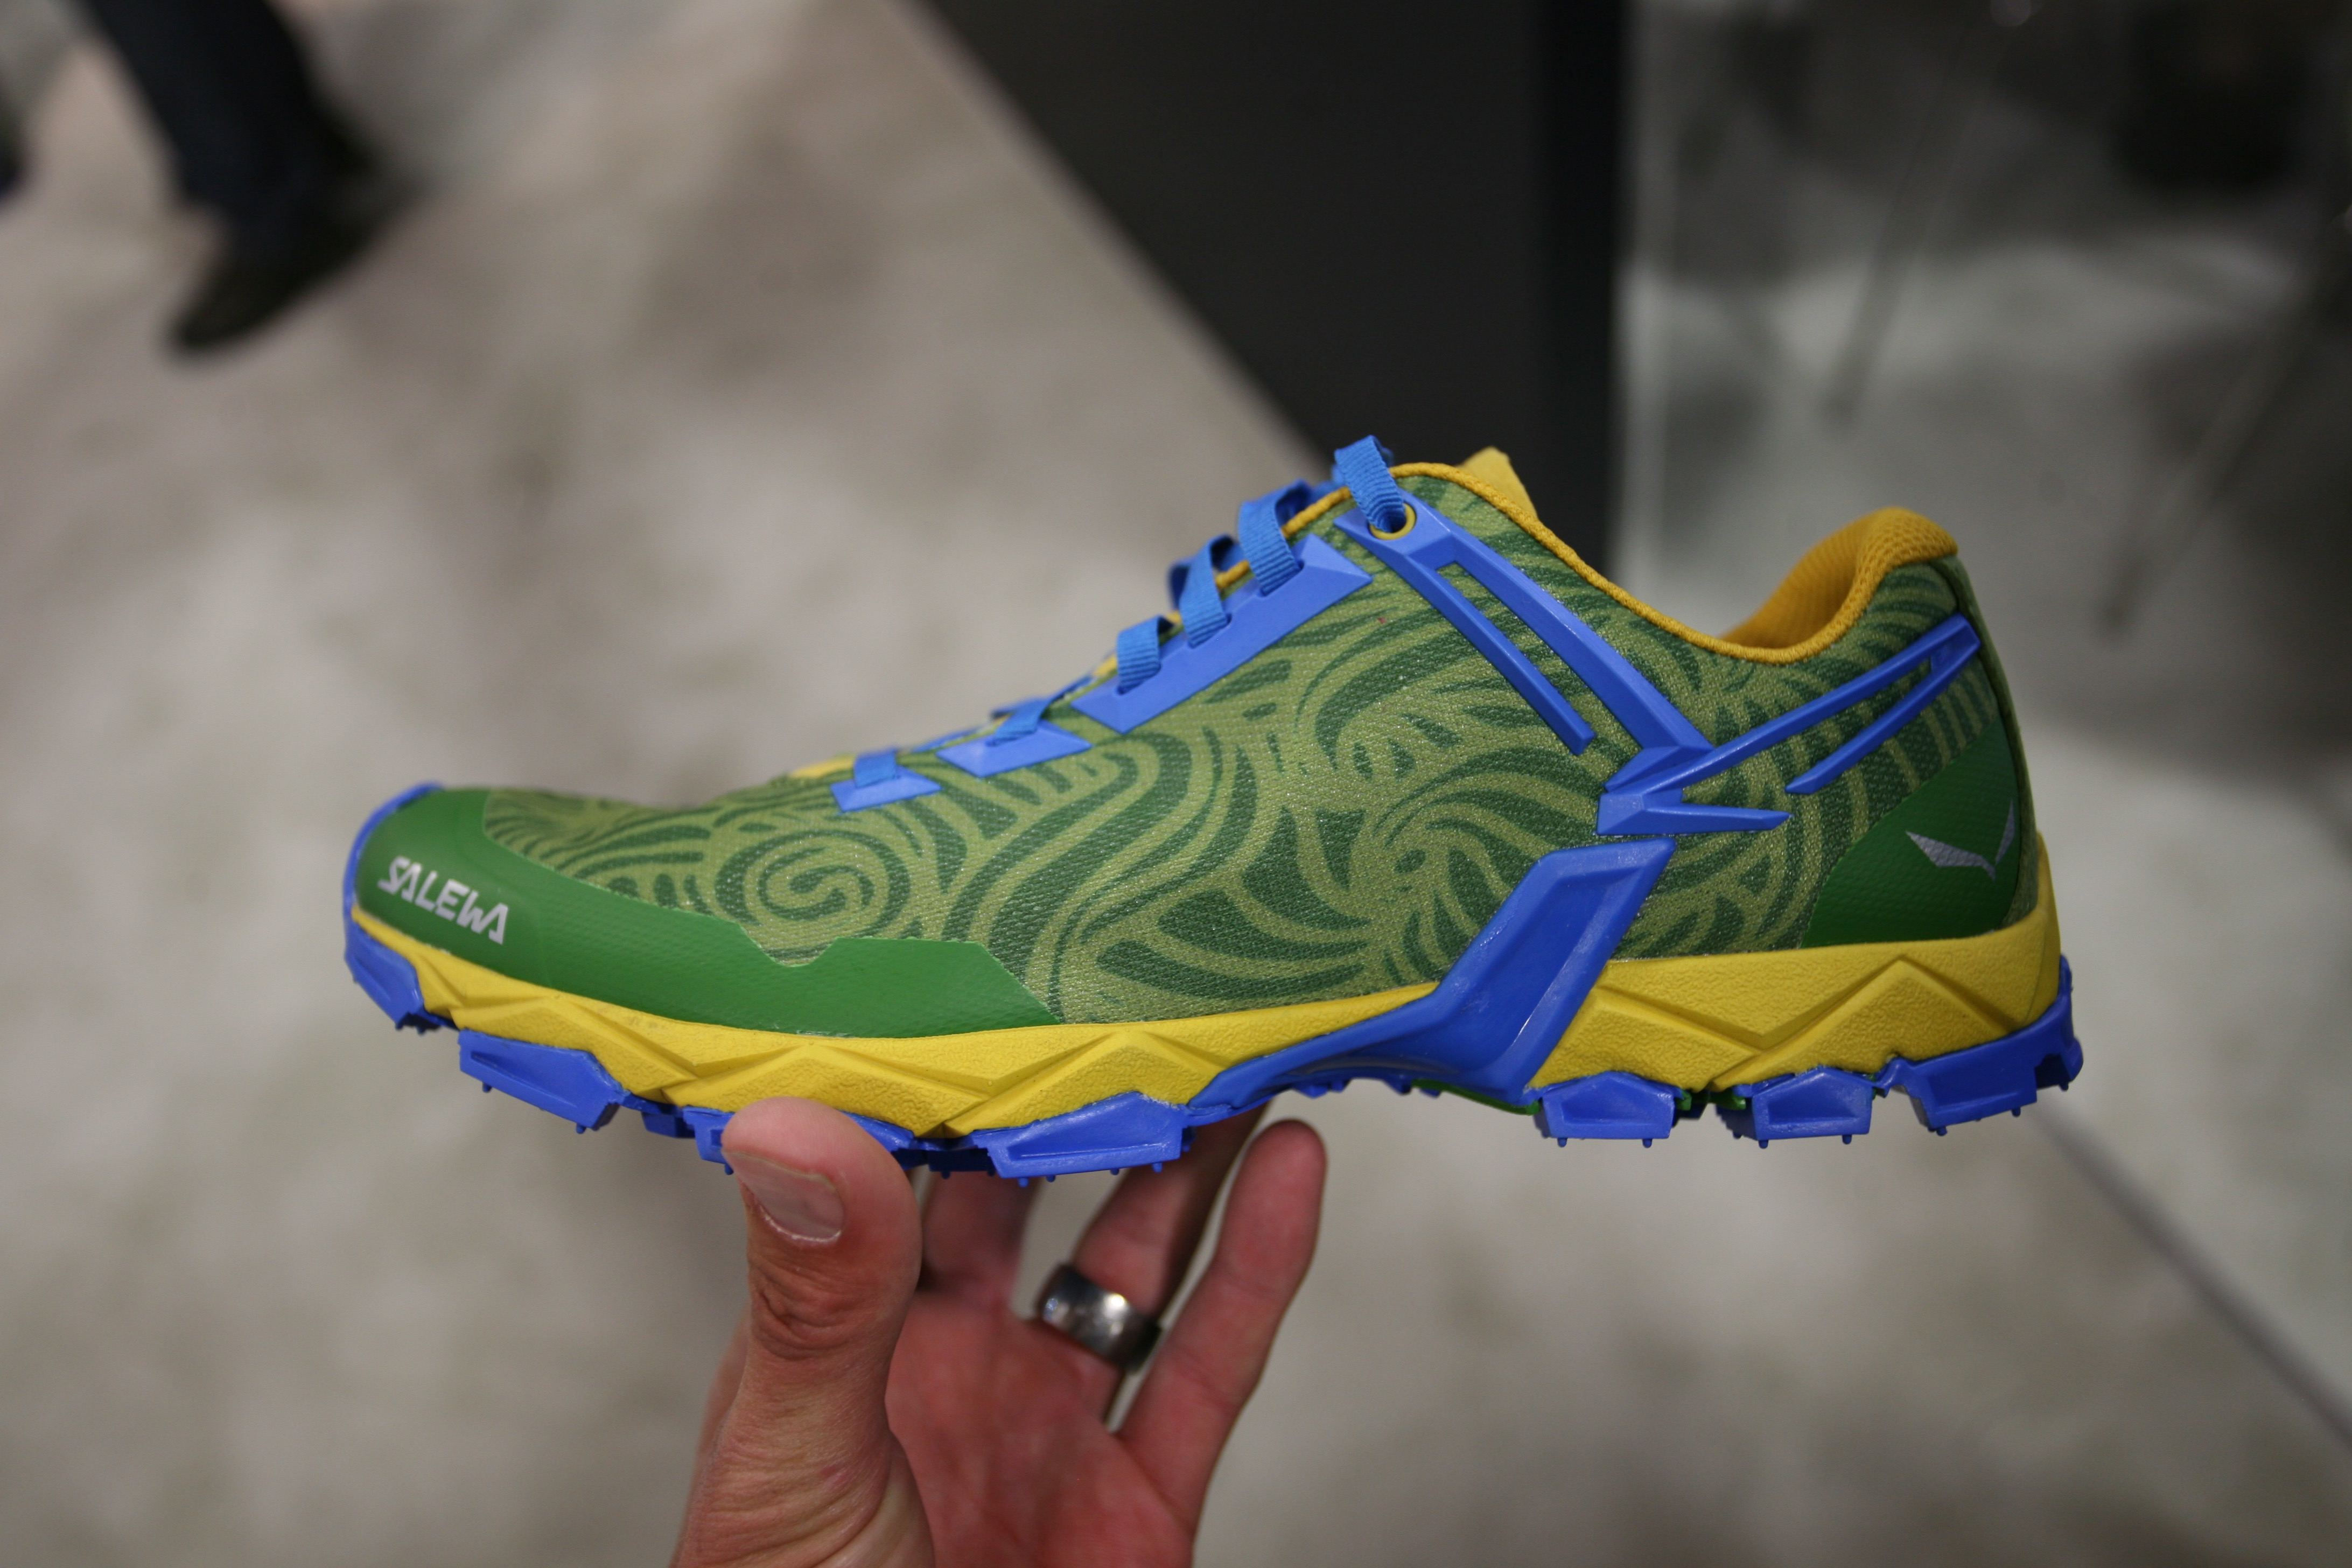 c6ba8d4a6 Salewa Lite Train. A fantastic looking light and fast shoe with  minimalistic design features.